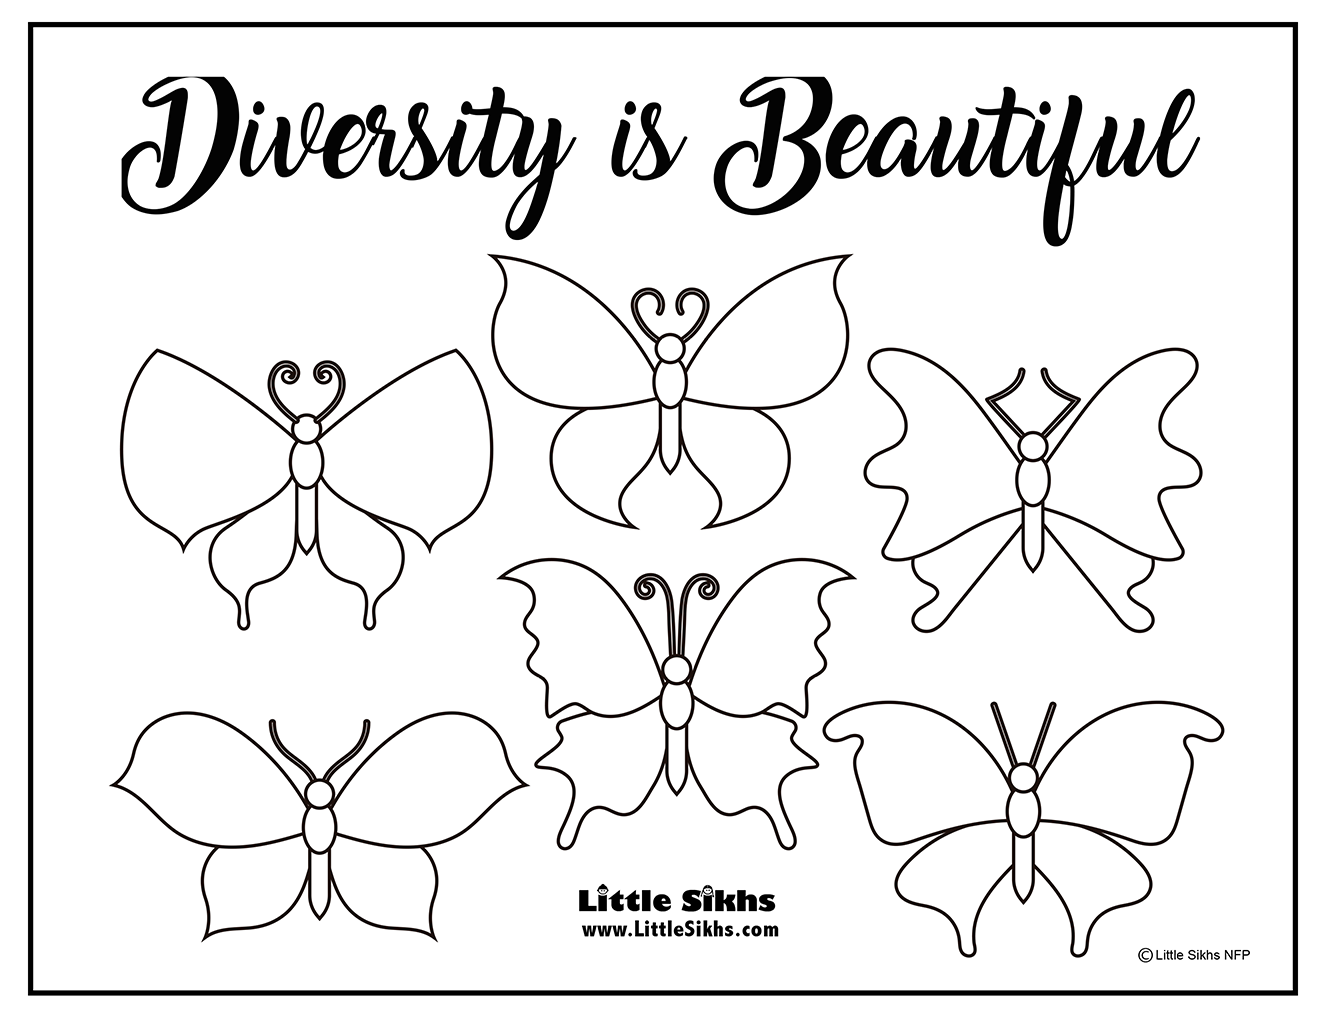 Diversity is Beautiful (Diversity Coloring Page)